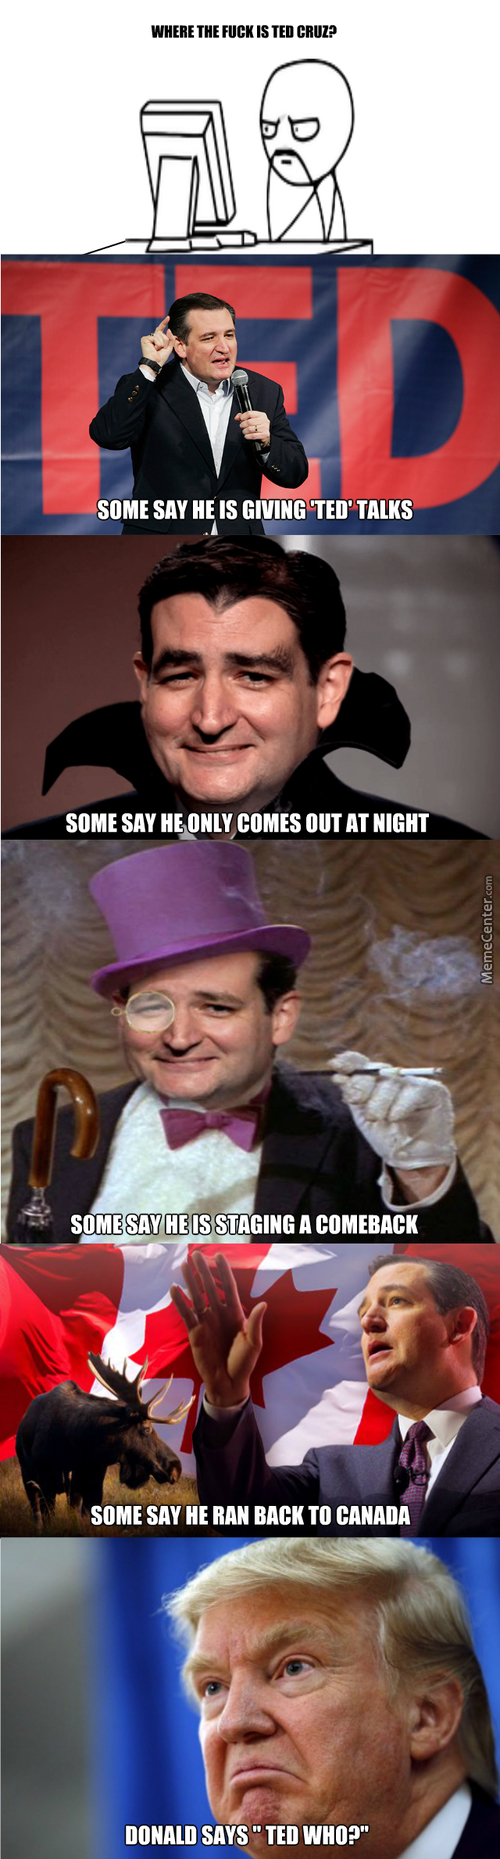 What Happened To Ted Cruz? He Is Fading From Memory